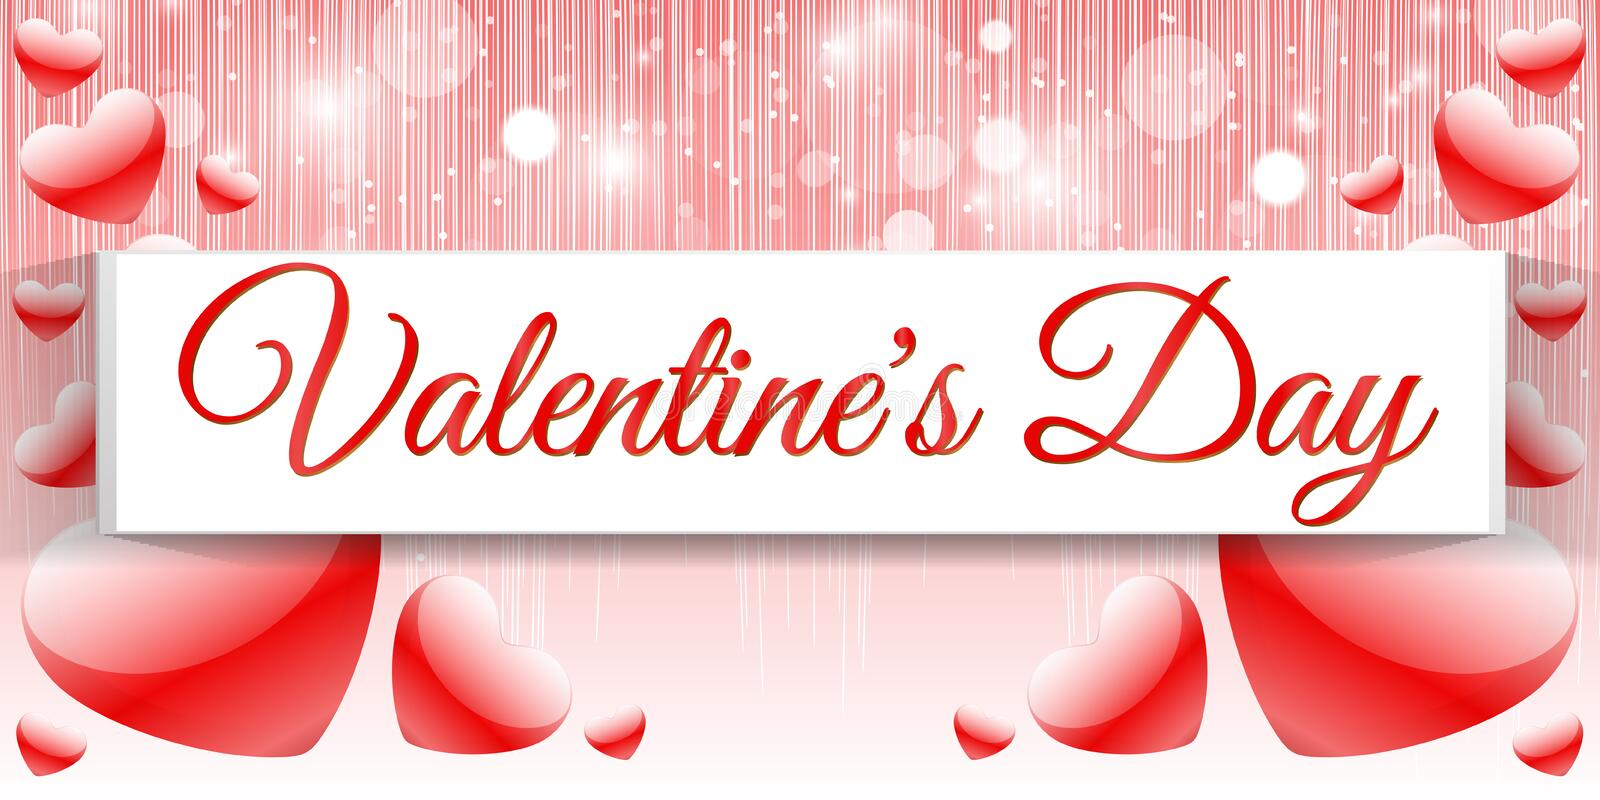 Creative red heart banner valentine day royalty free stock images